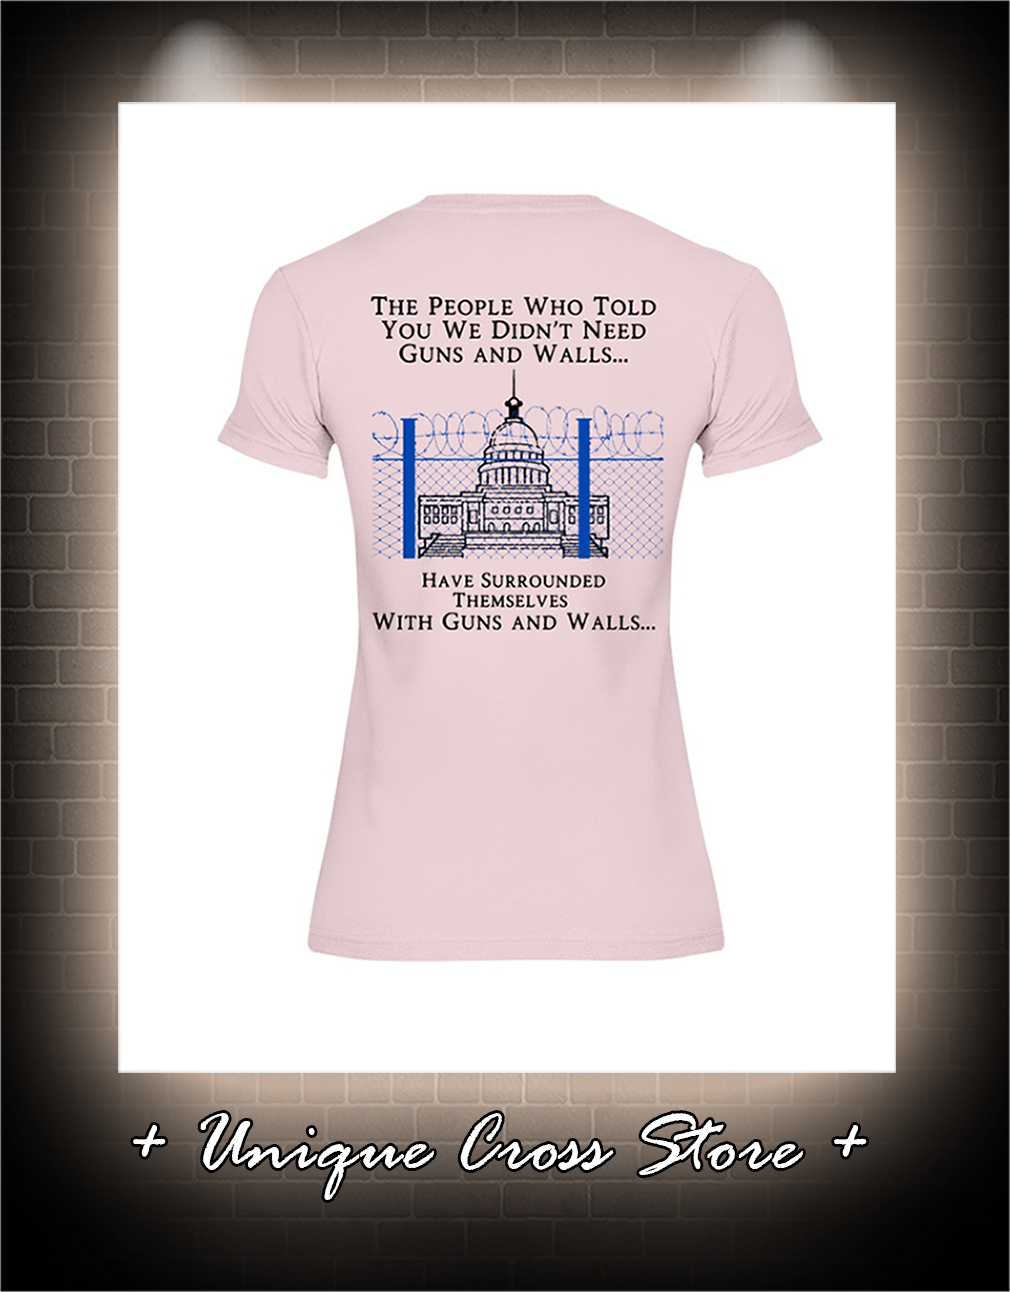 The people who told you we didn't need guns and walls have surrounded themselves with guns and walls lady shirt